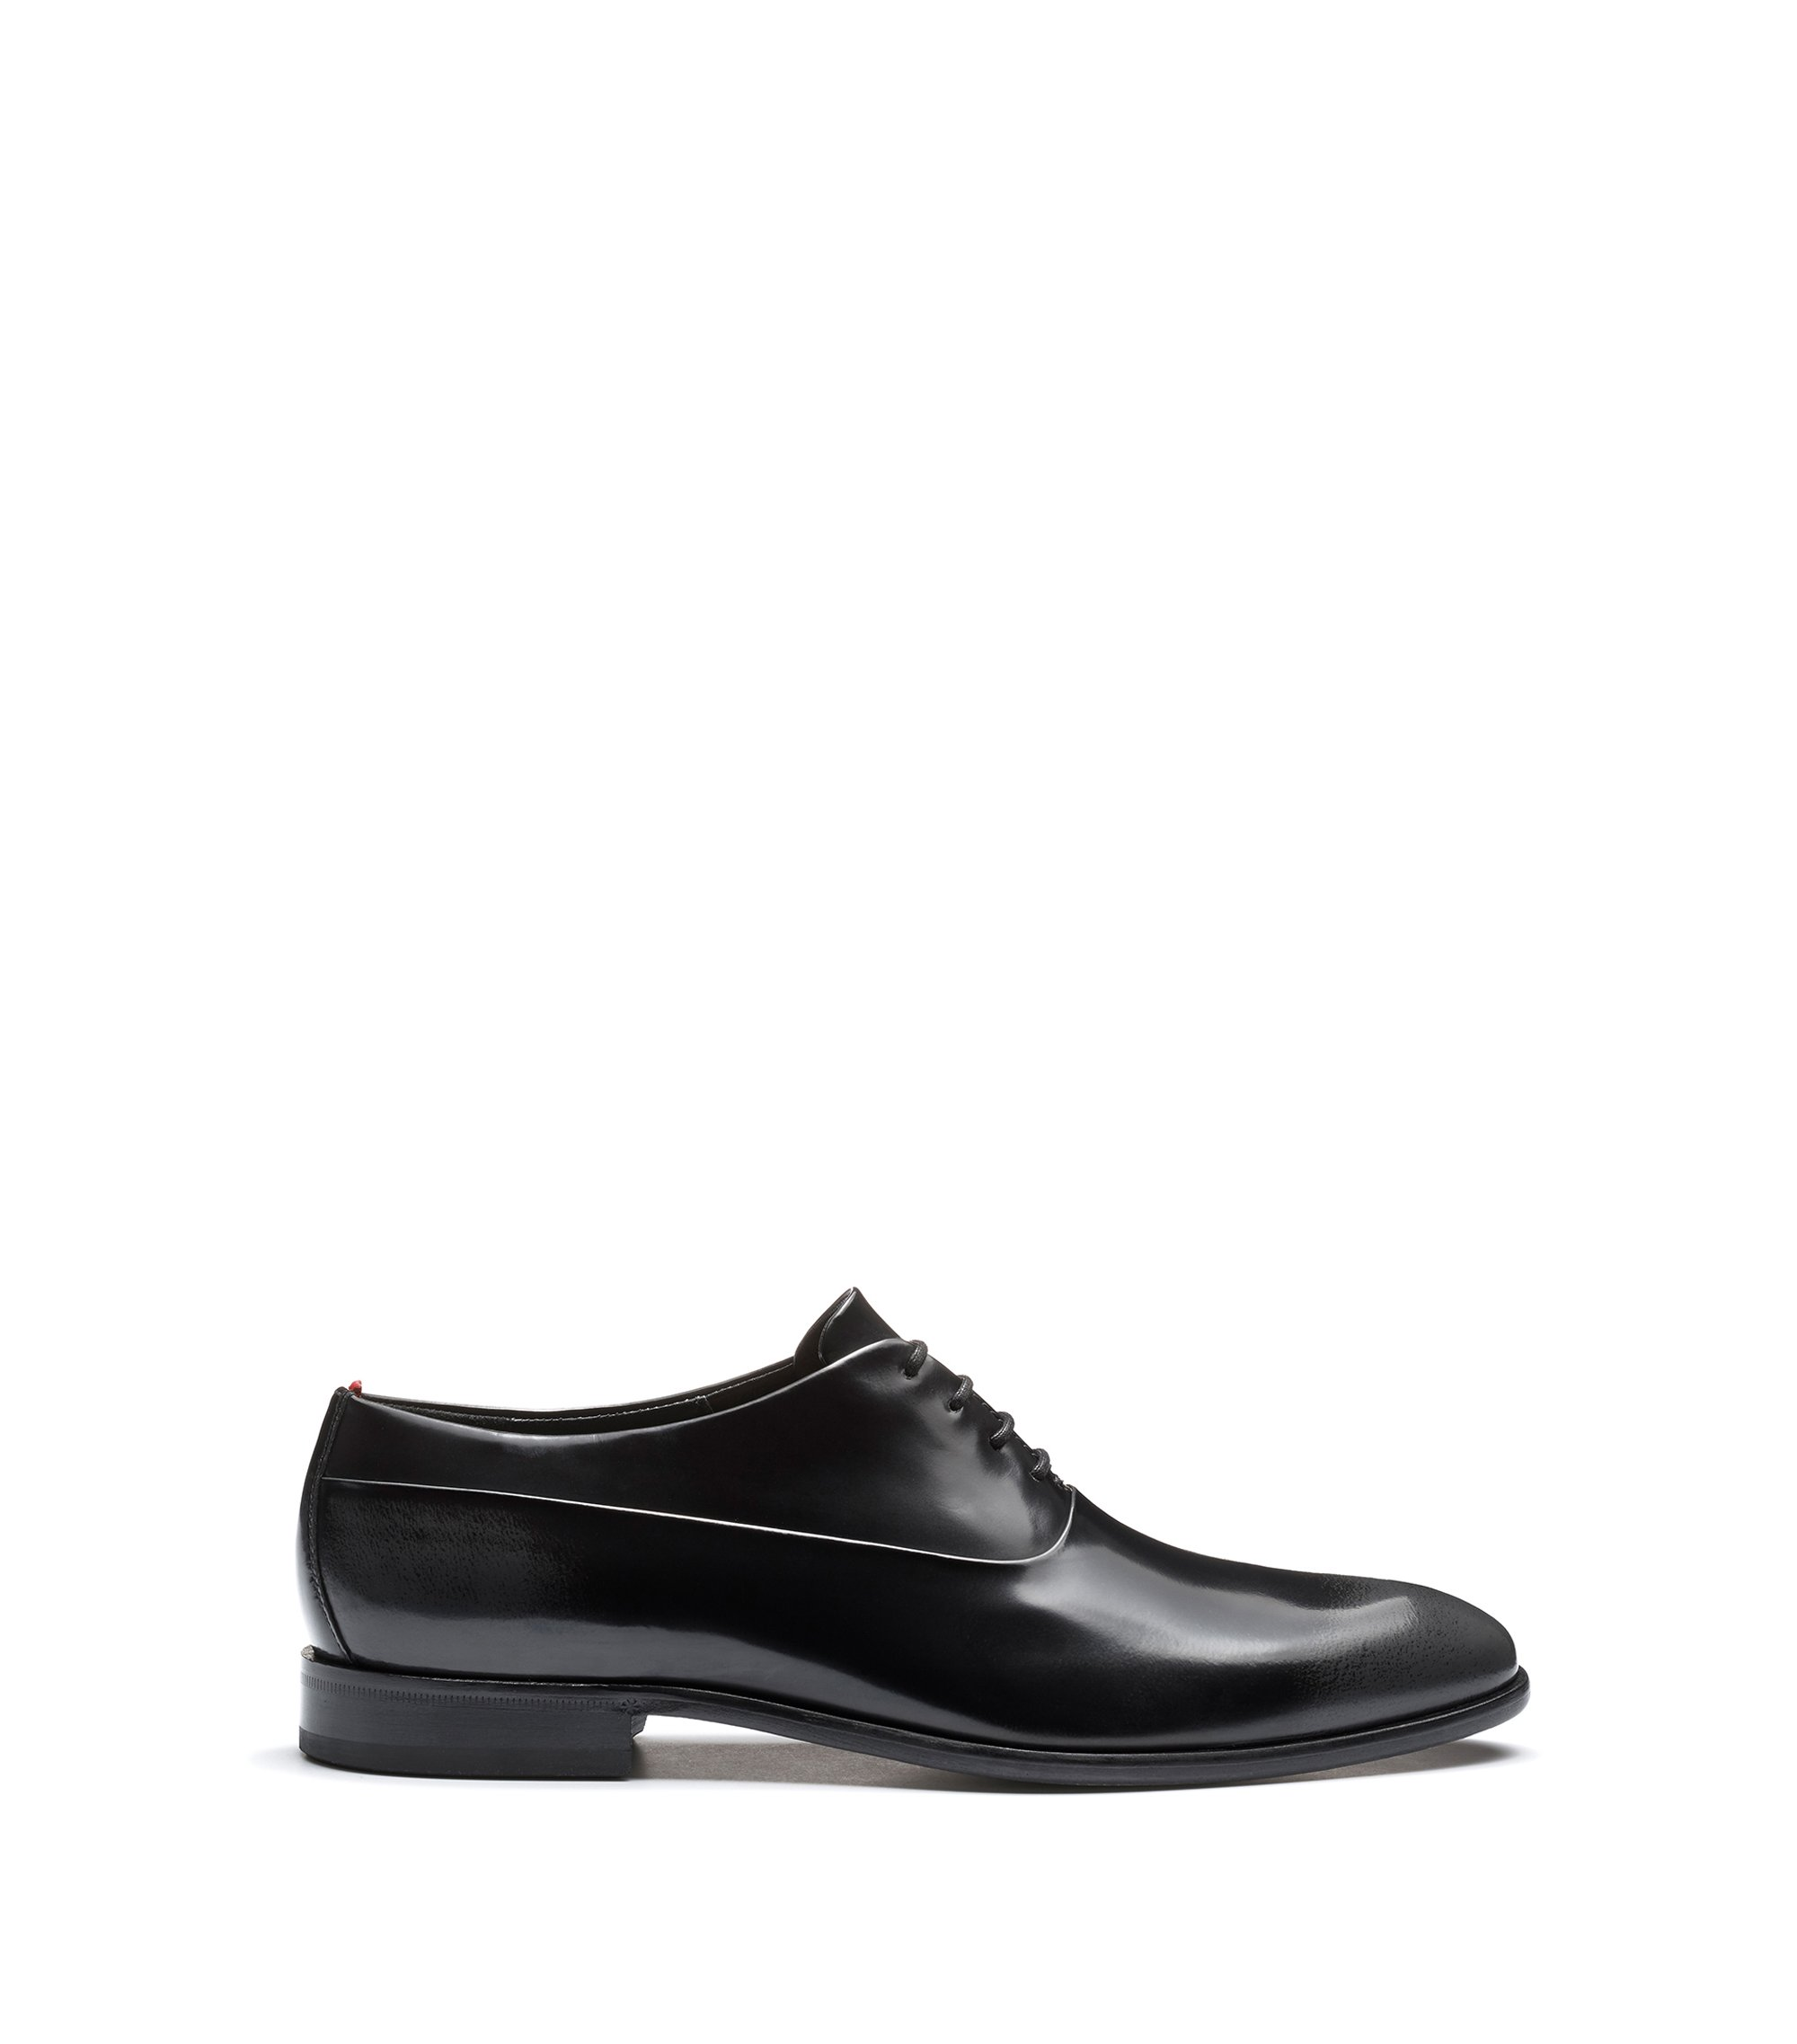 Two-tone Oxford shoes in brush-off leather, Black